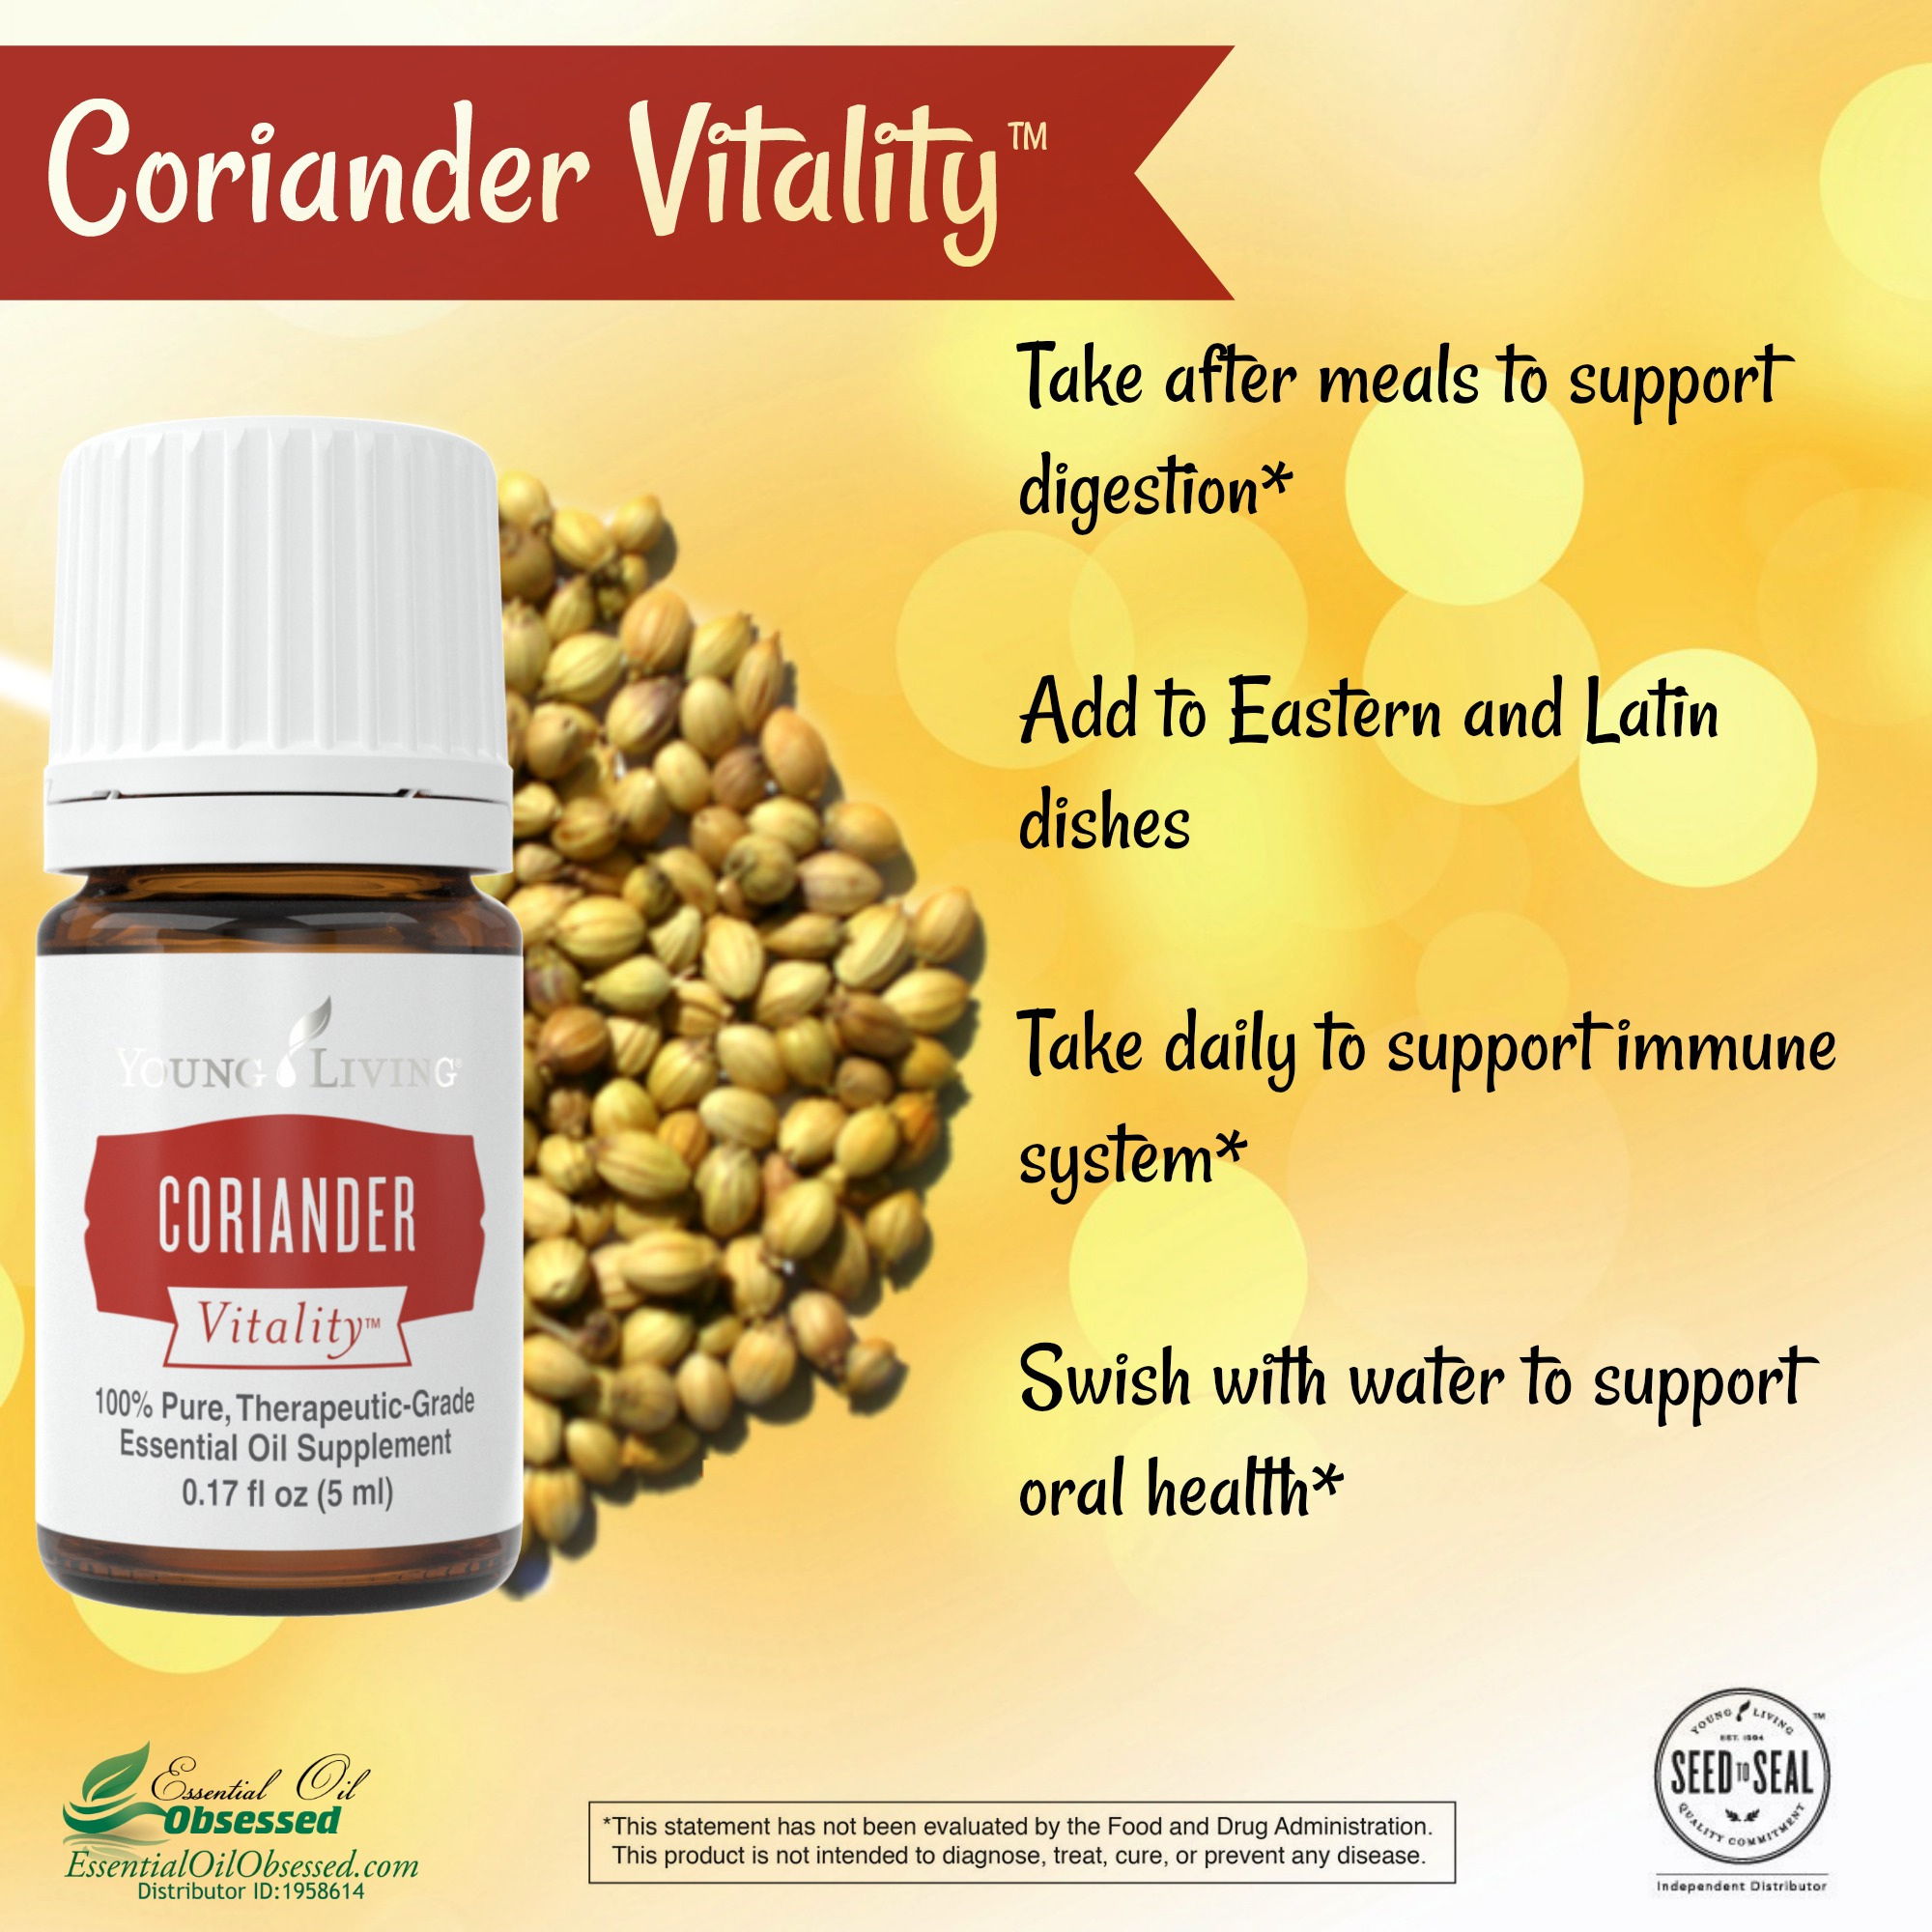 coriander vitality™ essential oil | essential oil obsessed